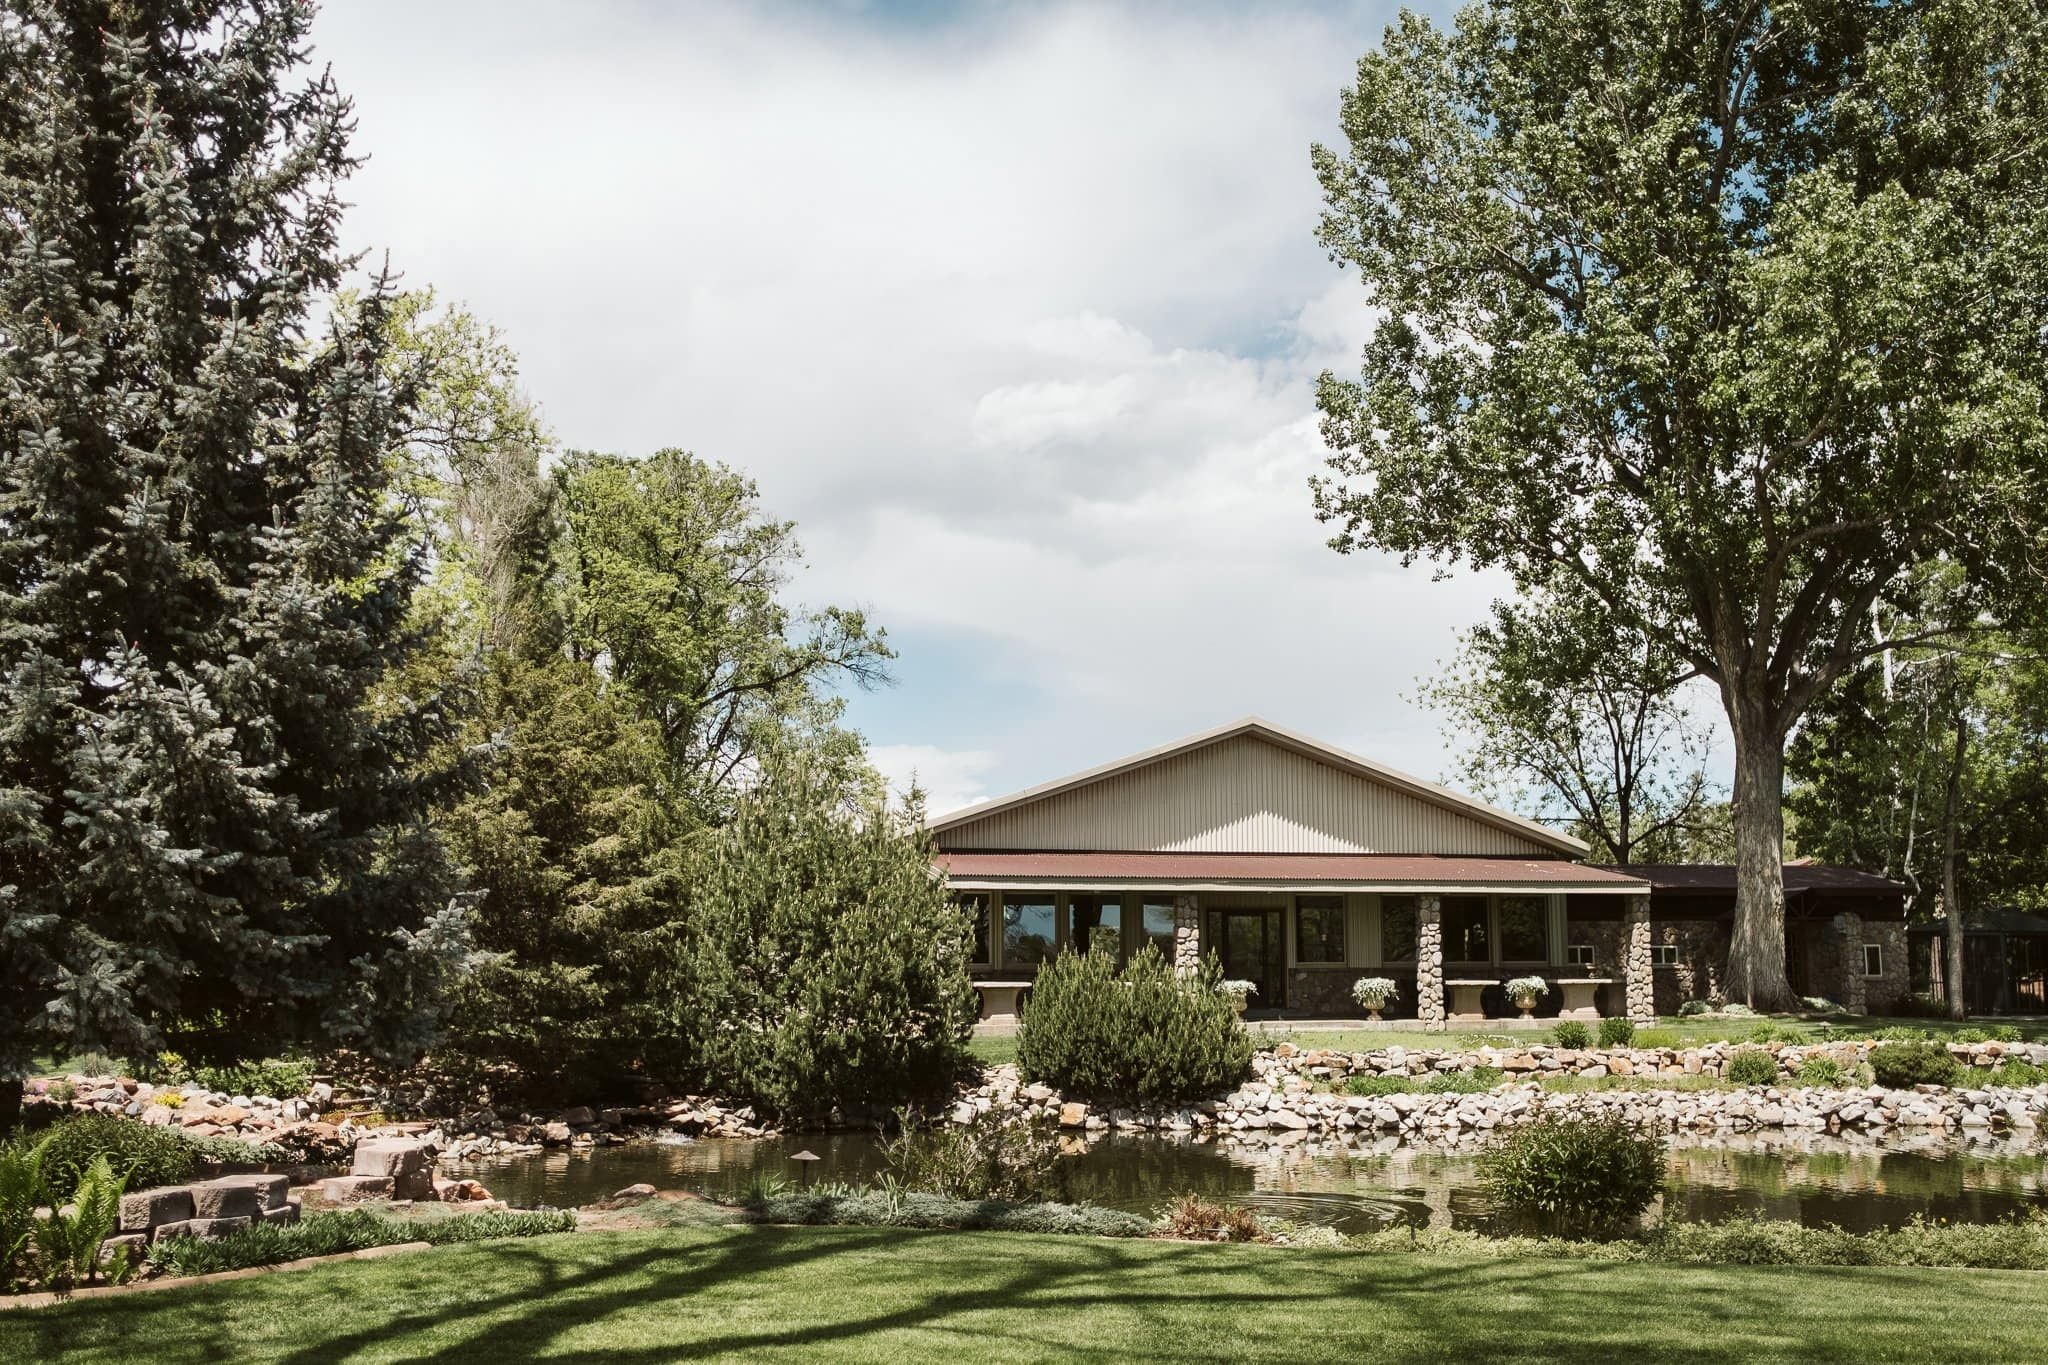 shupe-homestead-wedding-venue-boulder-5